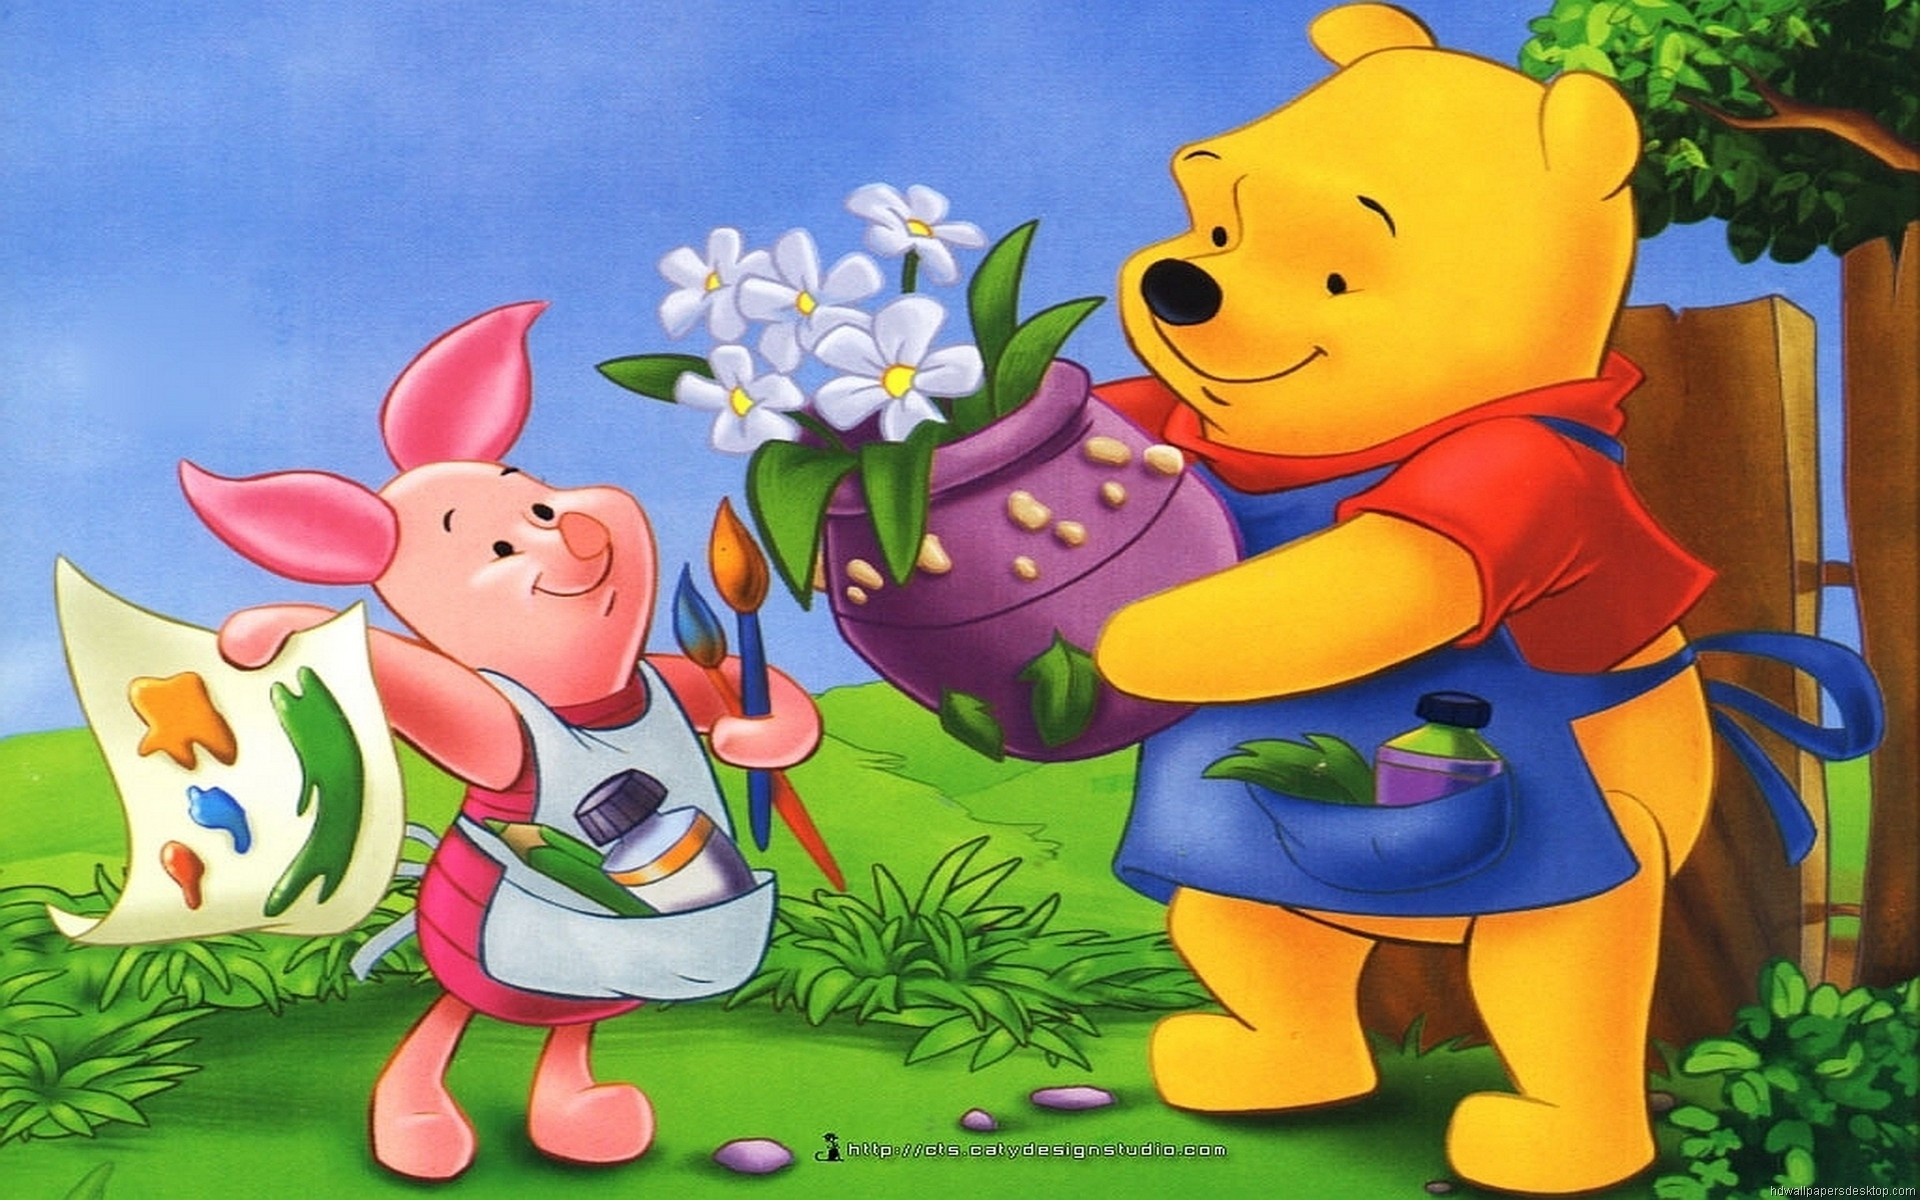 Winnie the pooh and friends wallpaper 58 pictures - Winnie the pooh and friends wallpaper ...